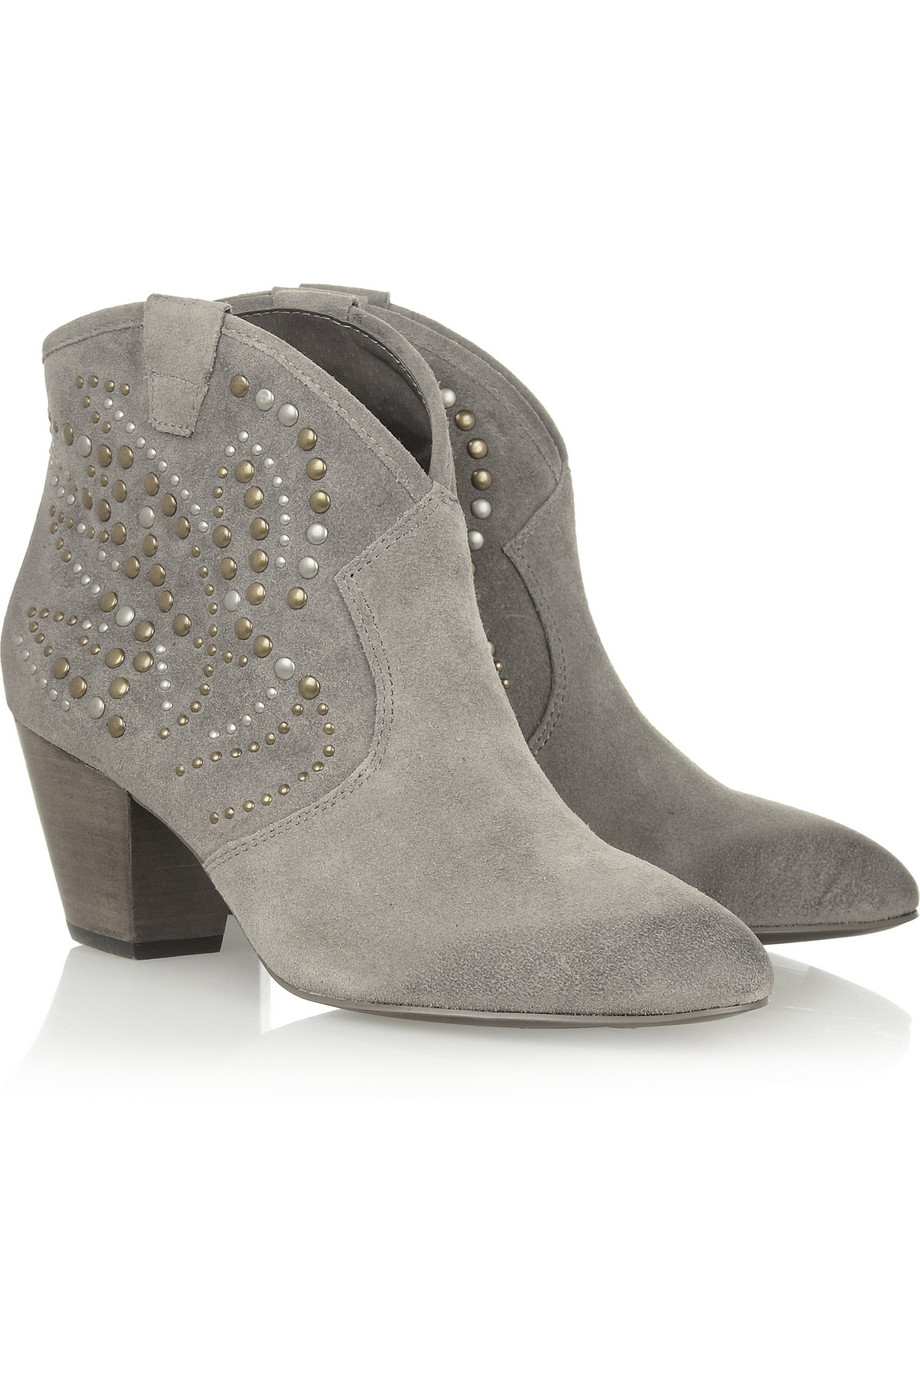 Ash Jessica Studded Suede Ankle Boots in Stone (Grey)